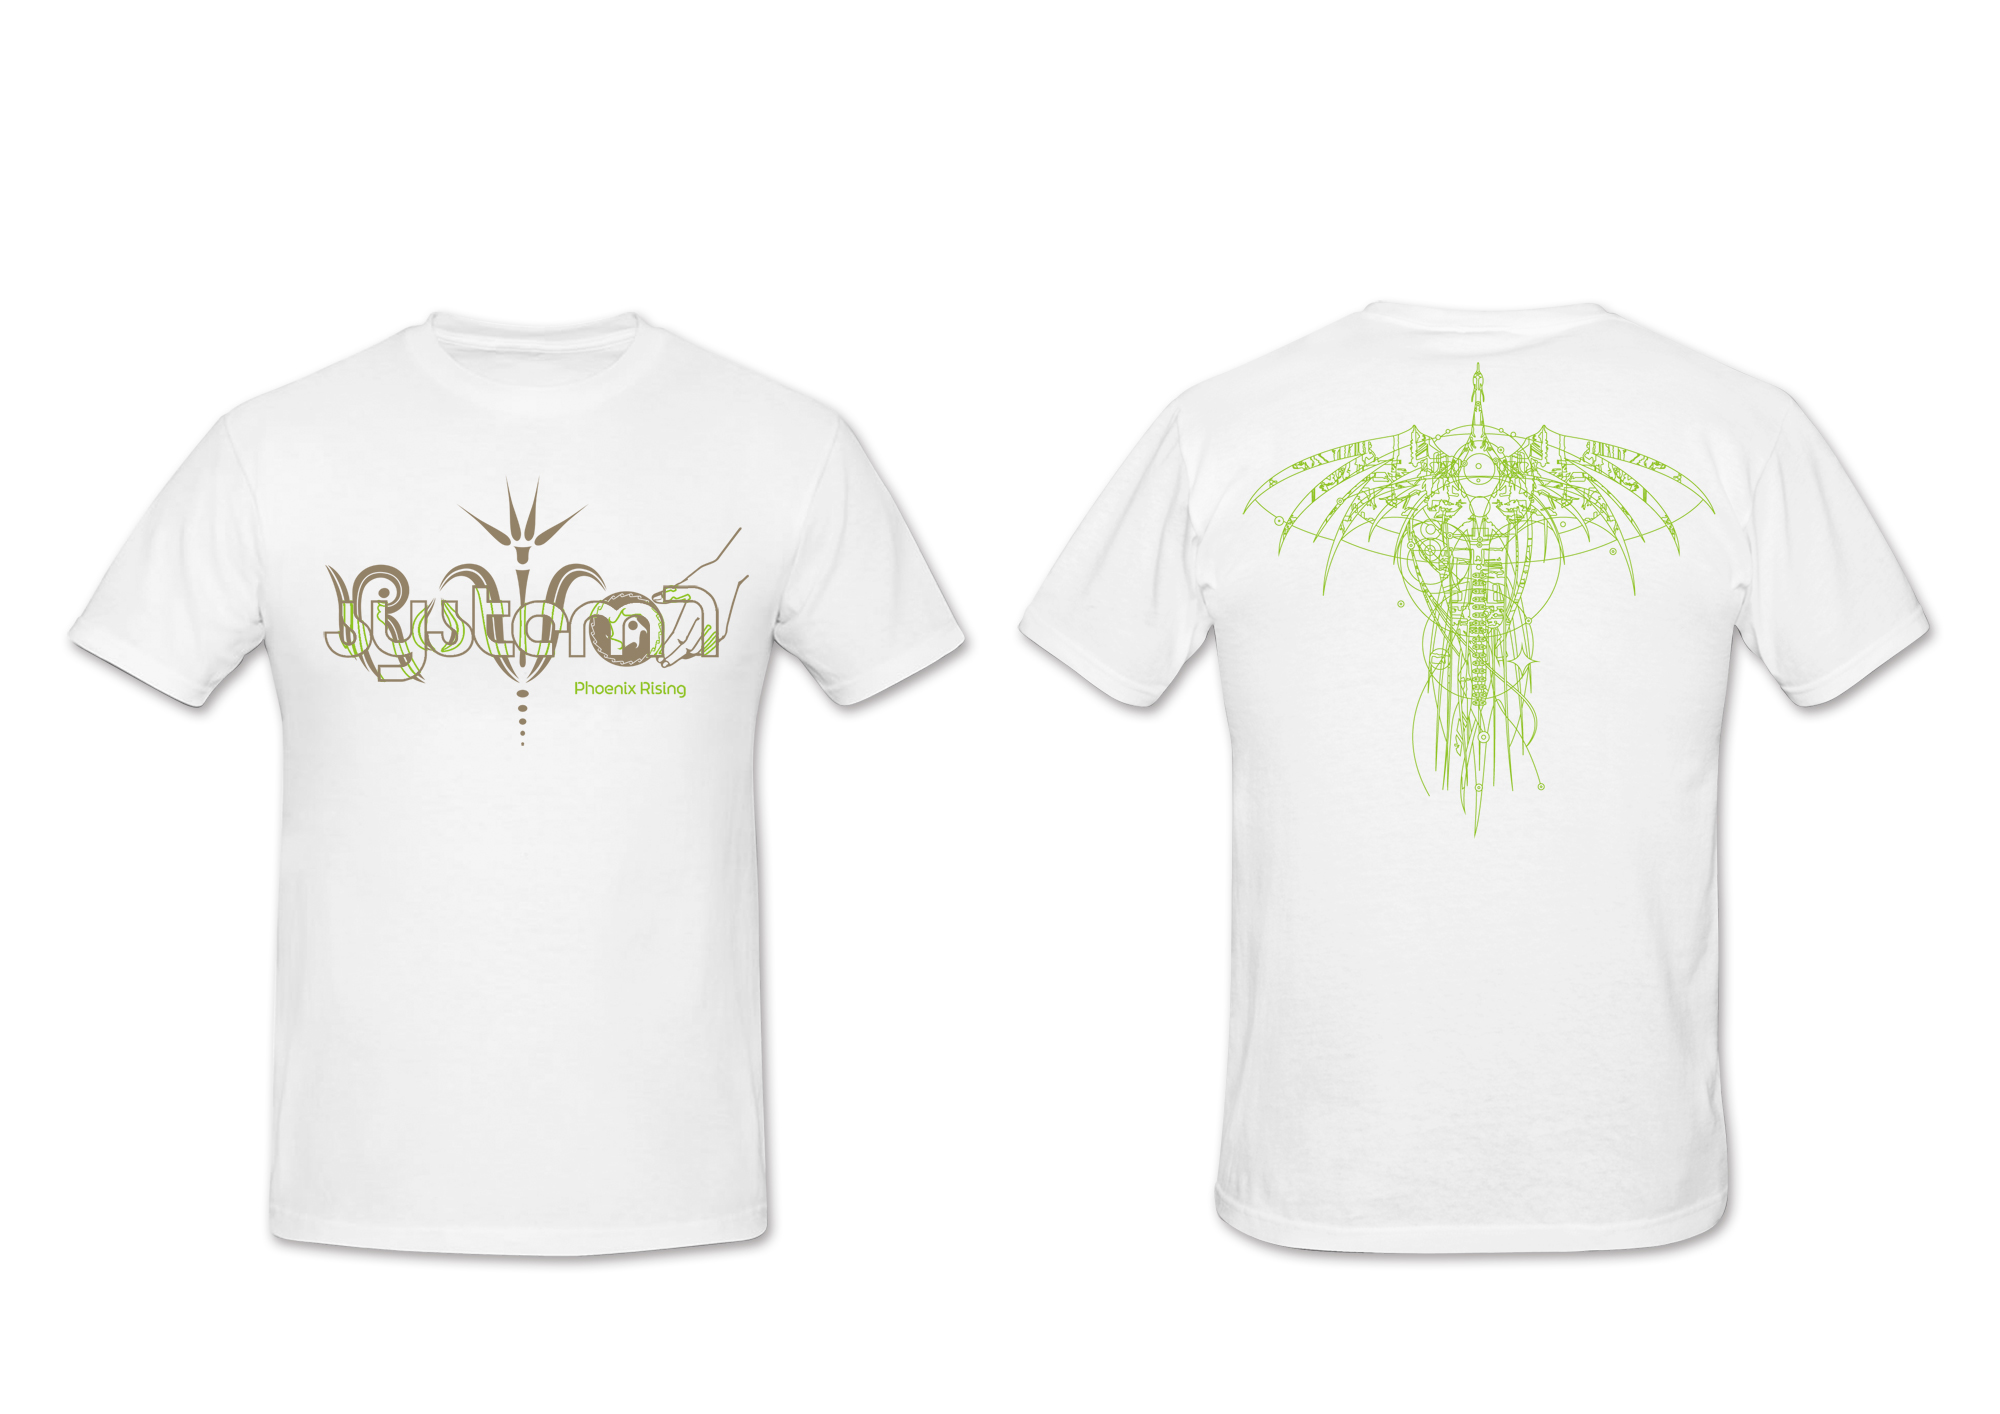 ROVO and System 7_T shirts_white.jpg